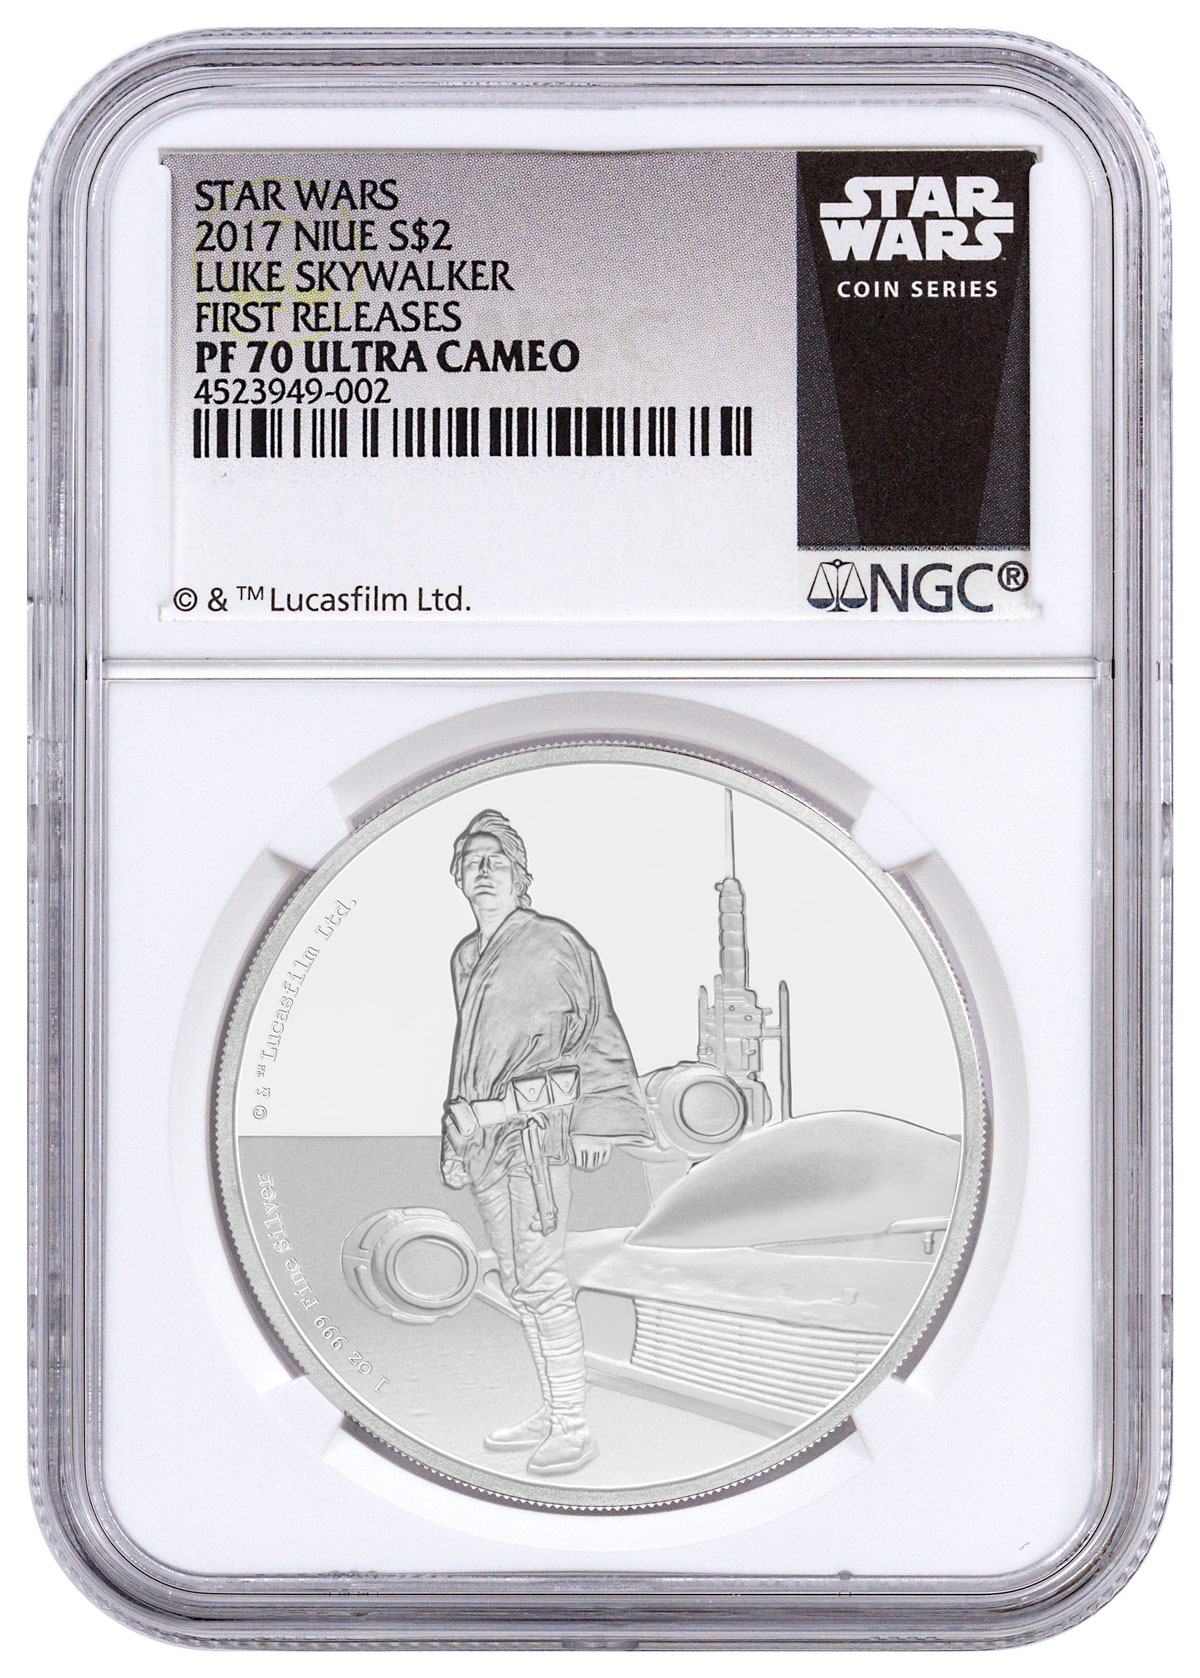 2017 Niue Star Wars Classic - Luke Skywalker 1 oz Silver Proof $2 Coin NGC PF70 UC FR (Exclusive Star Wars Label)